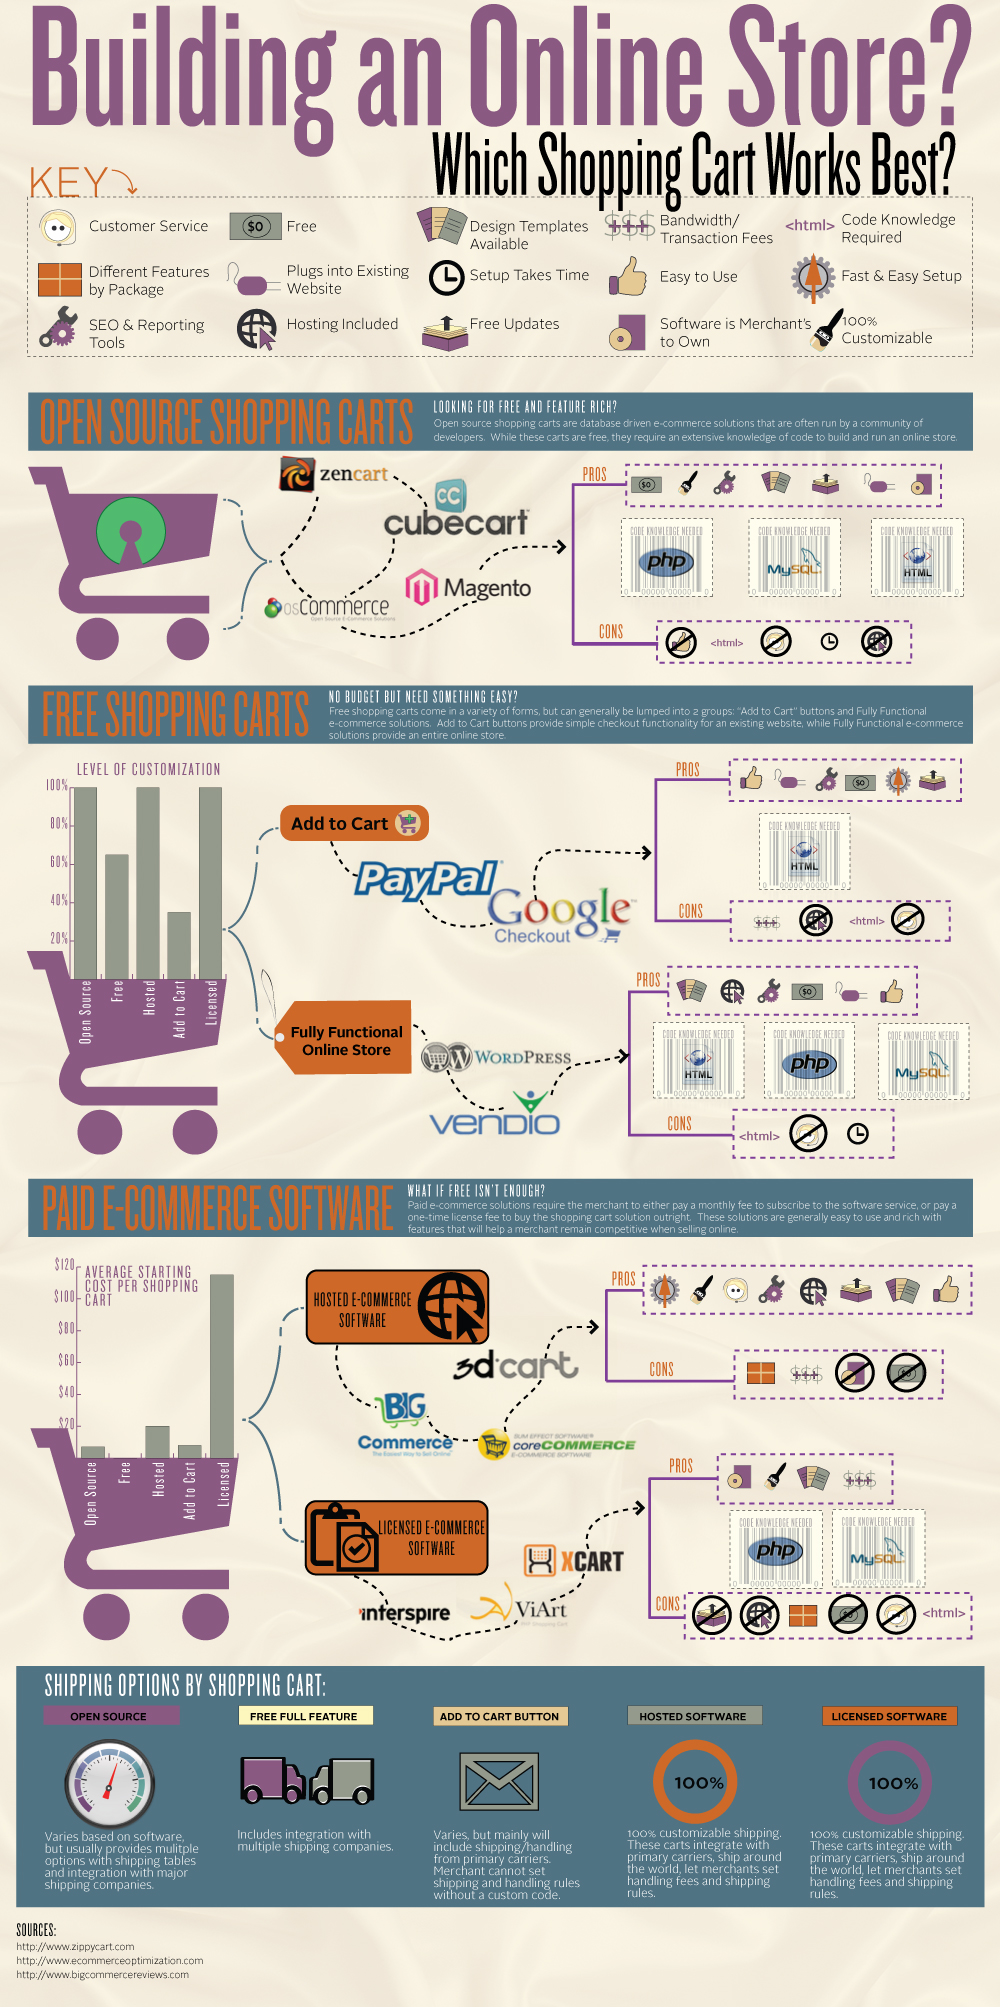 An infographic showing the details on how to build an online store from start to finish